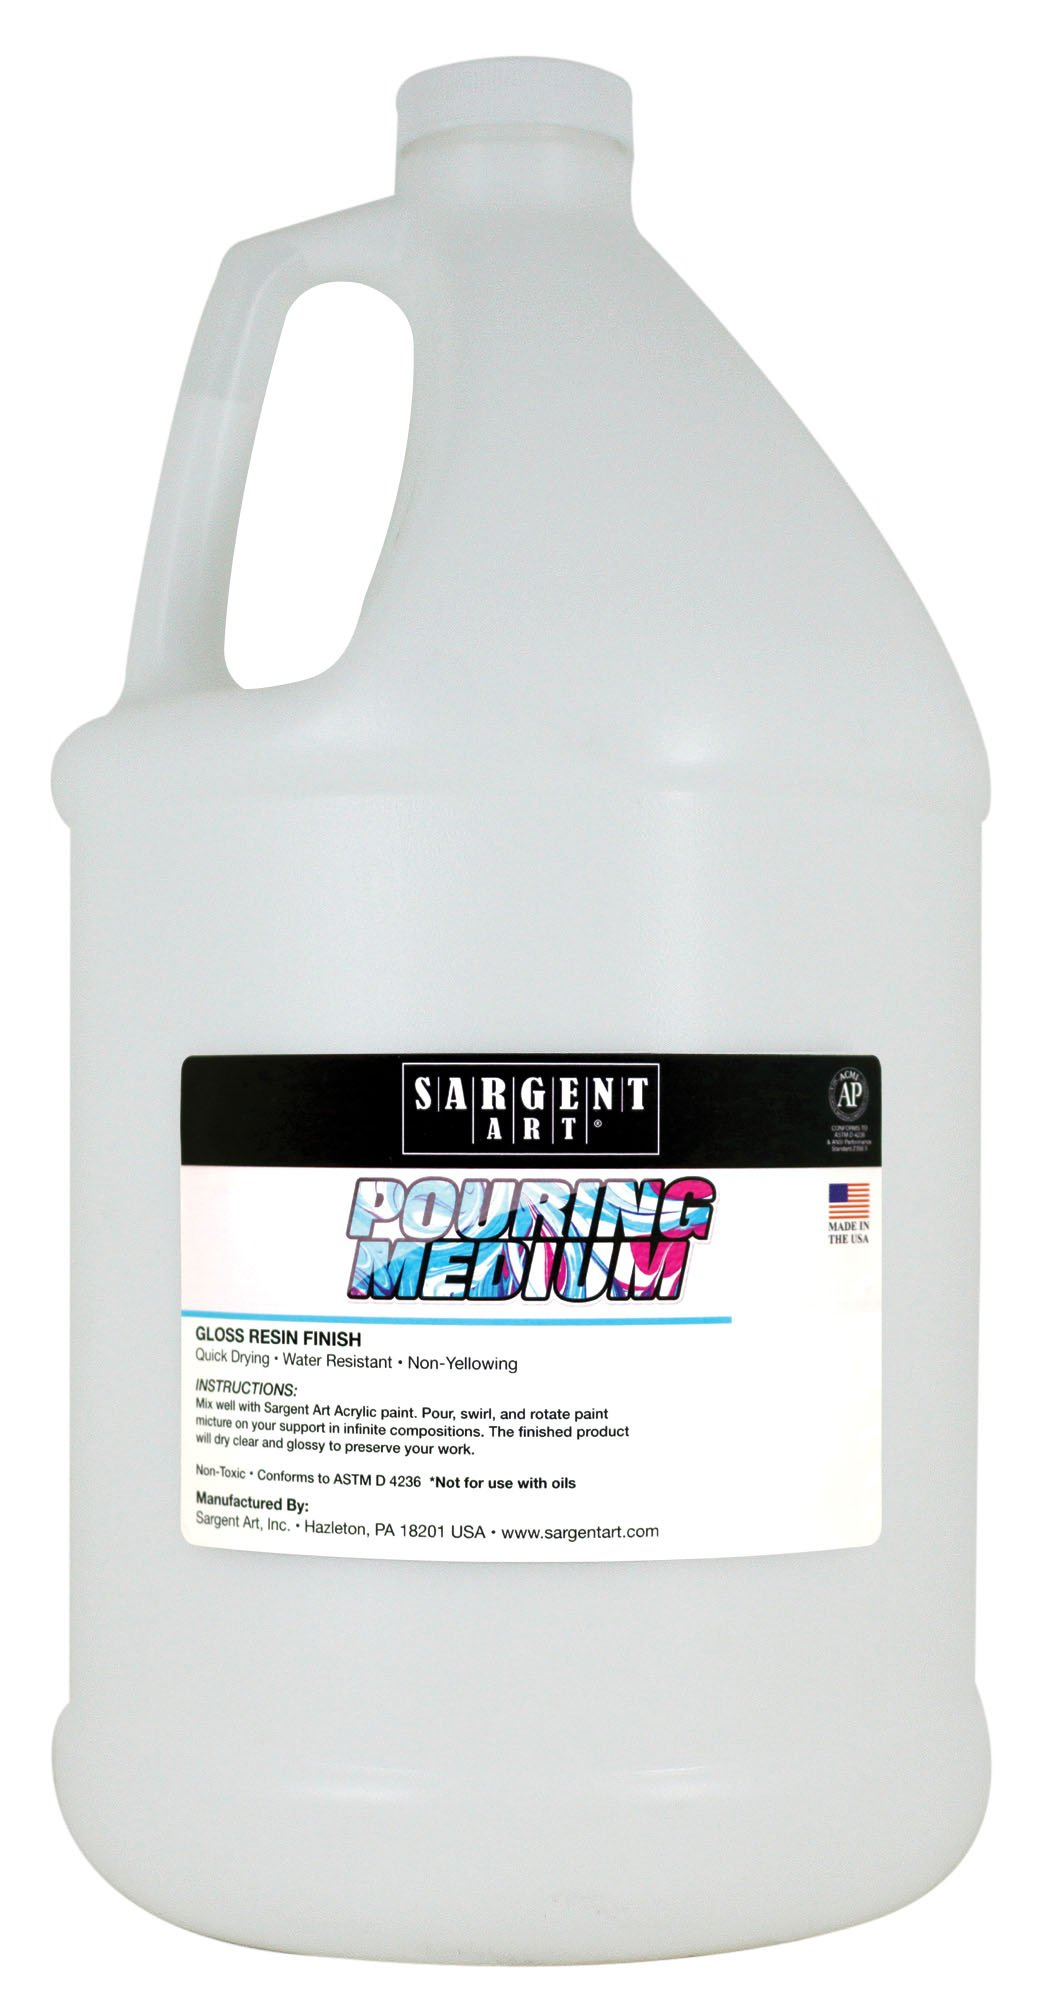 Sargent Art 22-8827 Pouring Acrylic Medium, 128 oz by Sargent Art